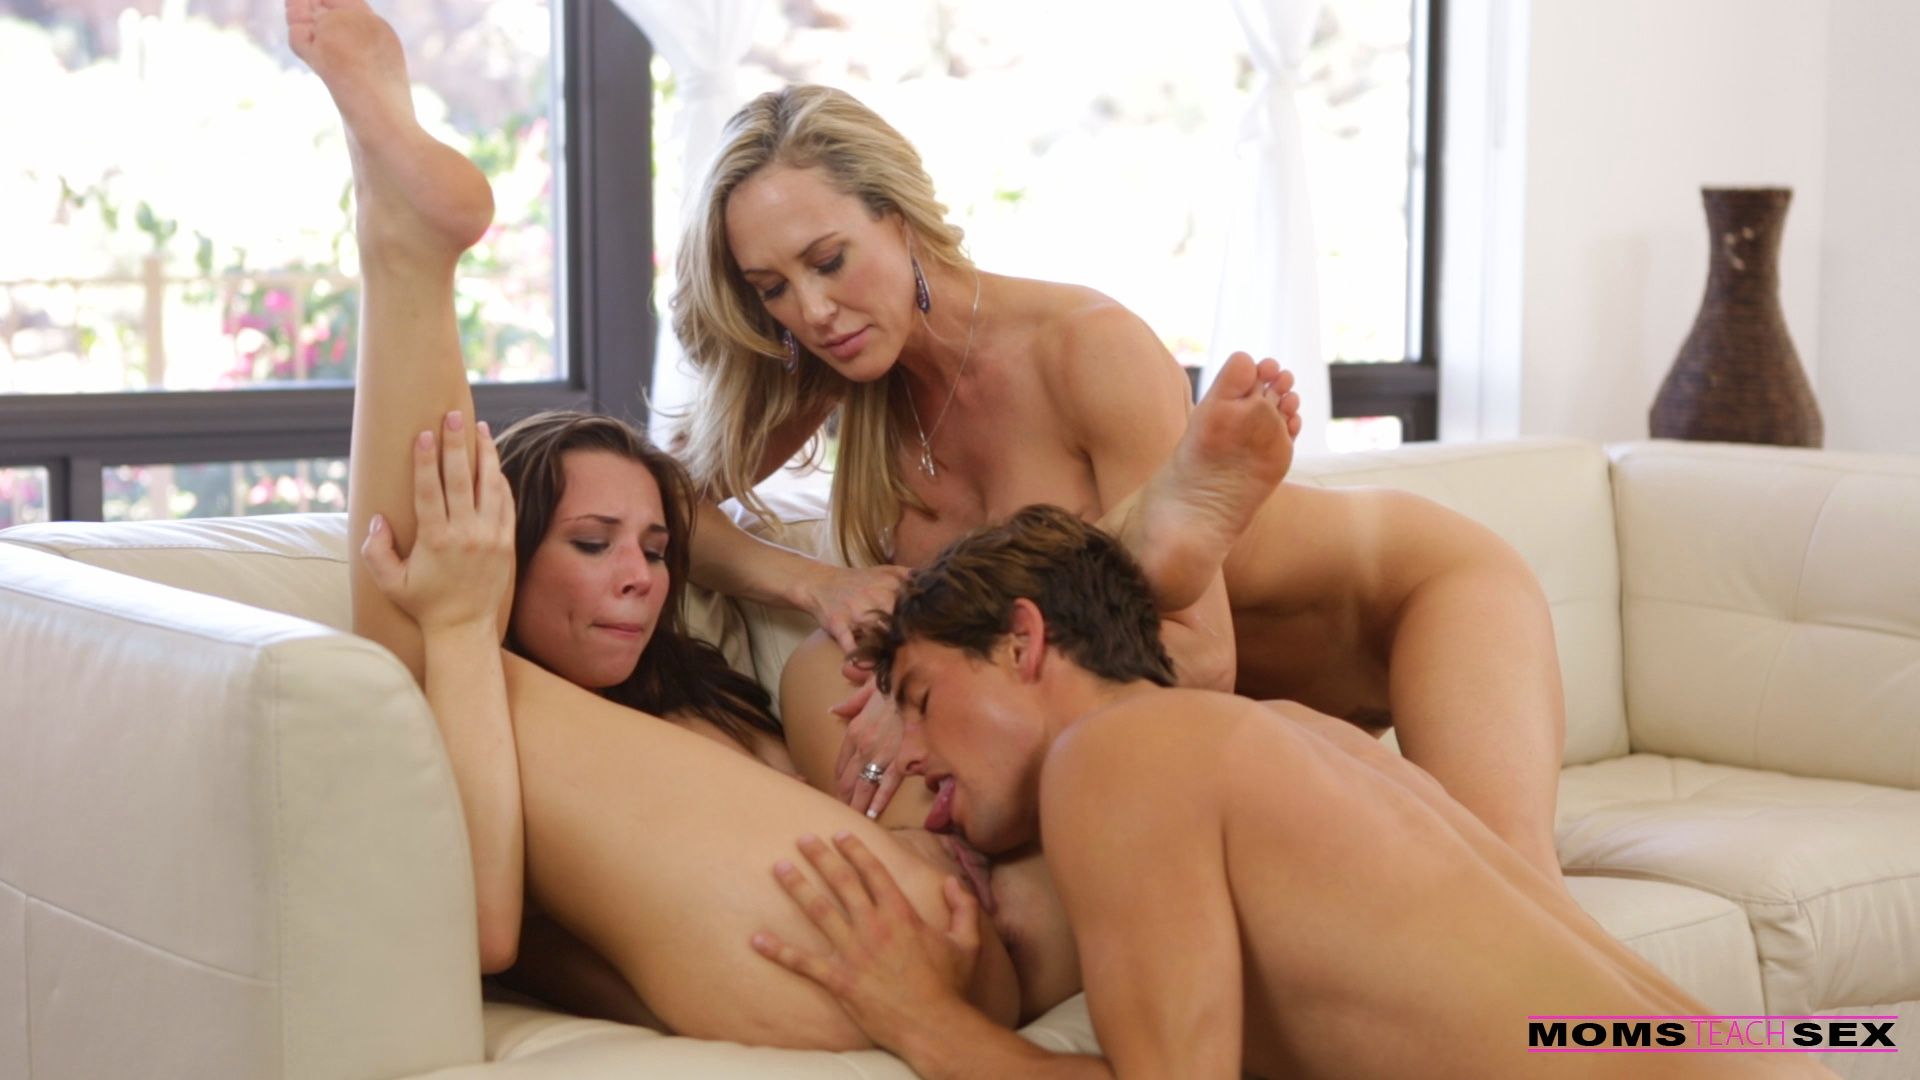 Hot naked country girl sex